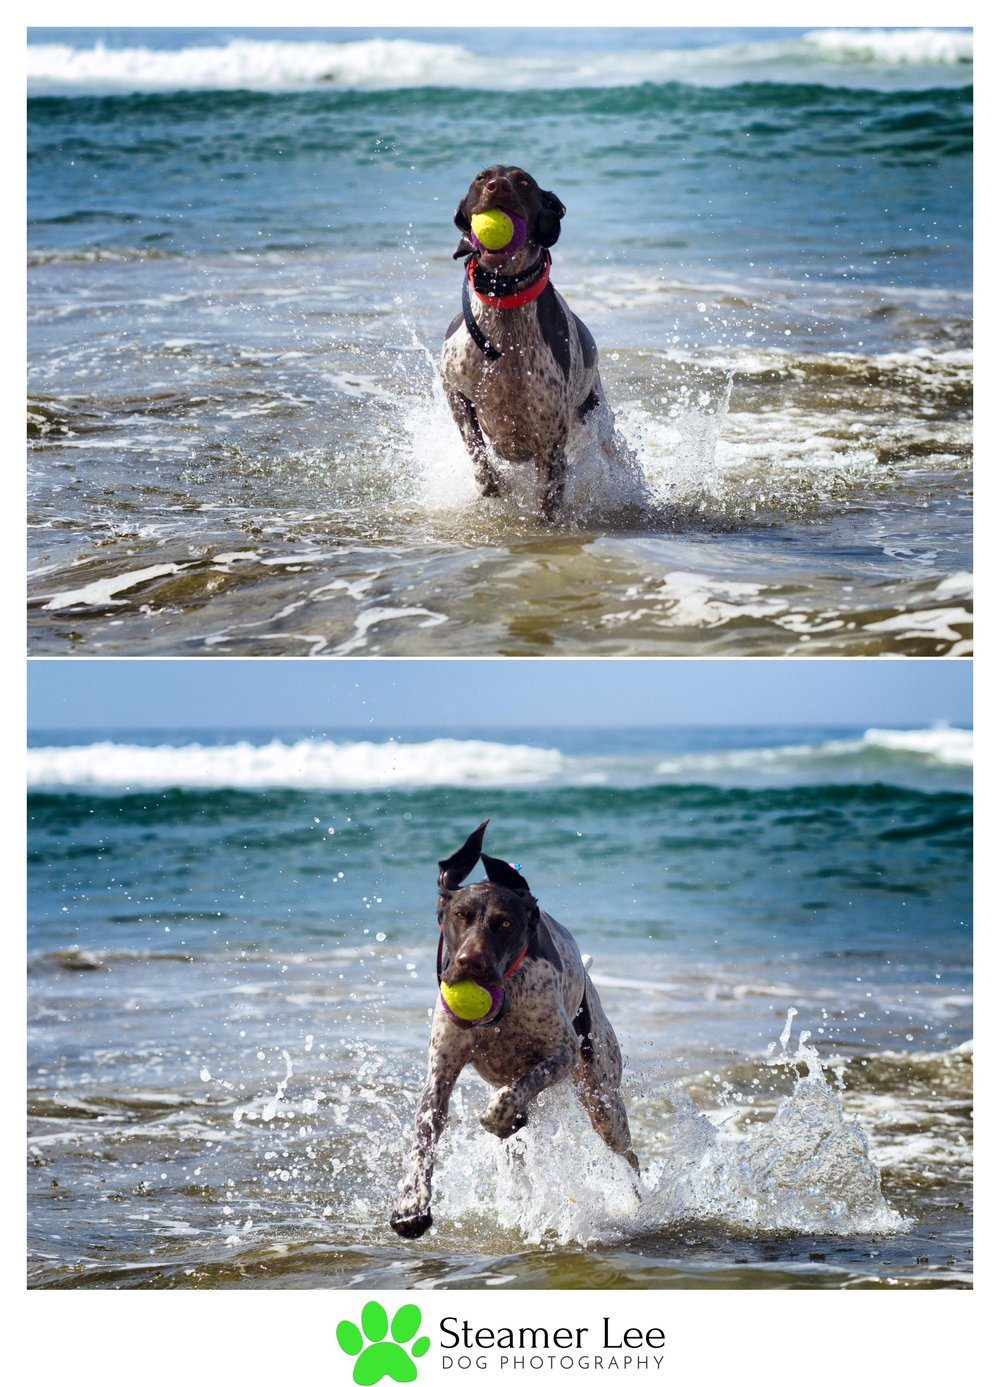 Steamer Lee Dog Photography - German Shorthaired Pointer Meetup - Huntington Beach Dog Beach - 00037.jpg